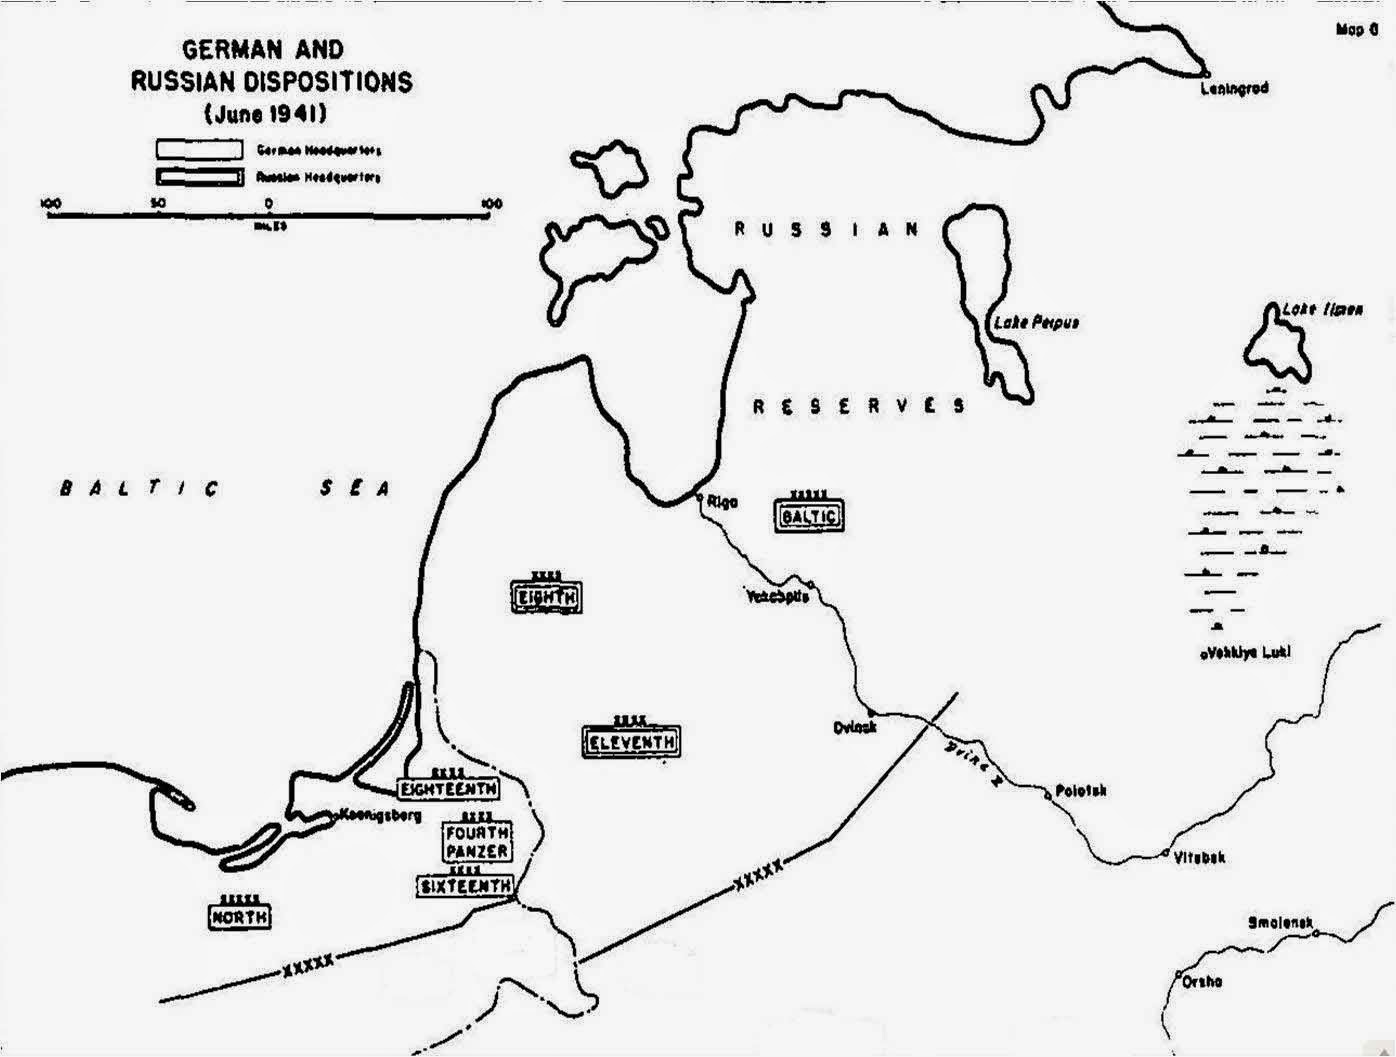 Dispositions of the German and Soviet forces in the northern sector